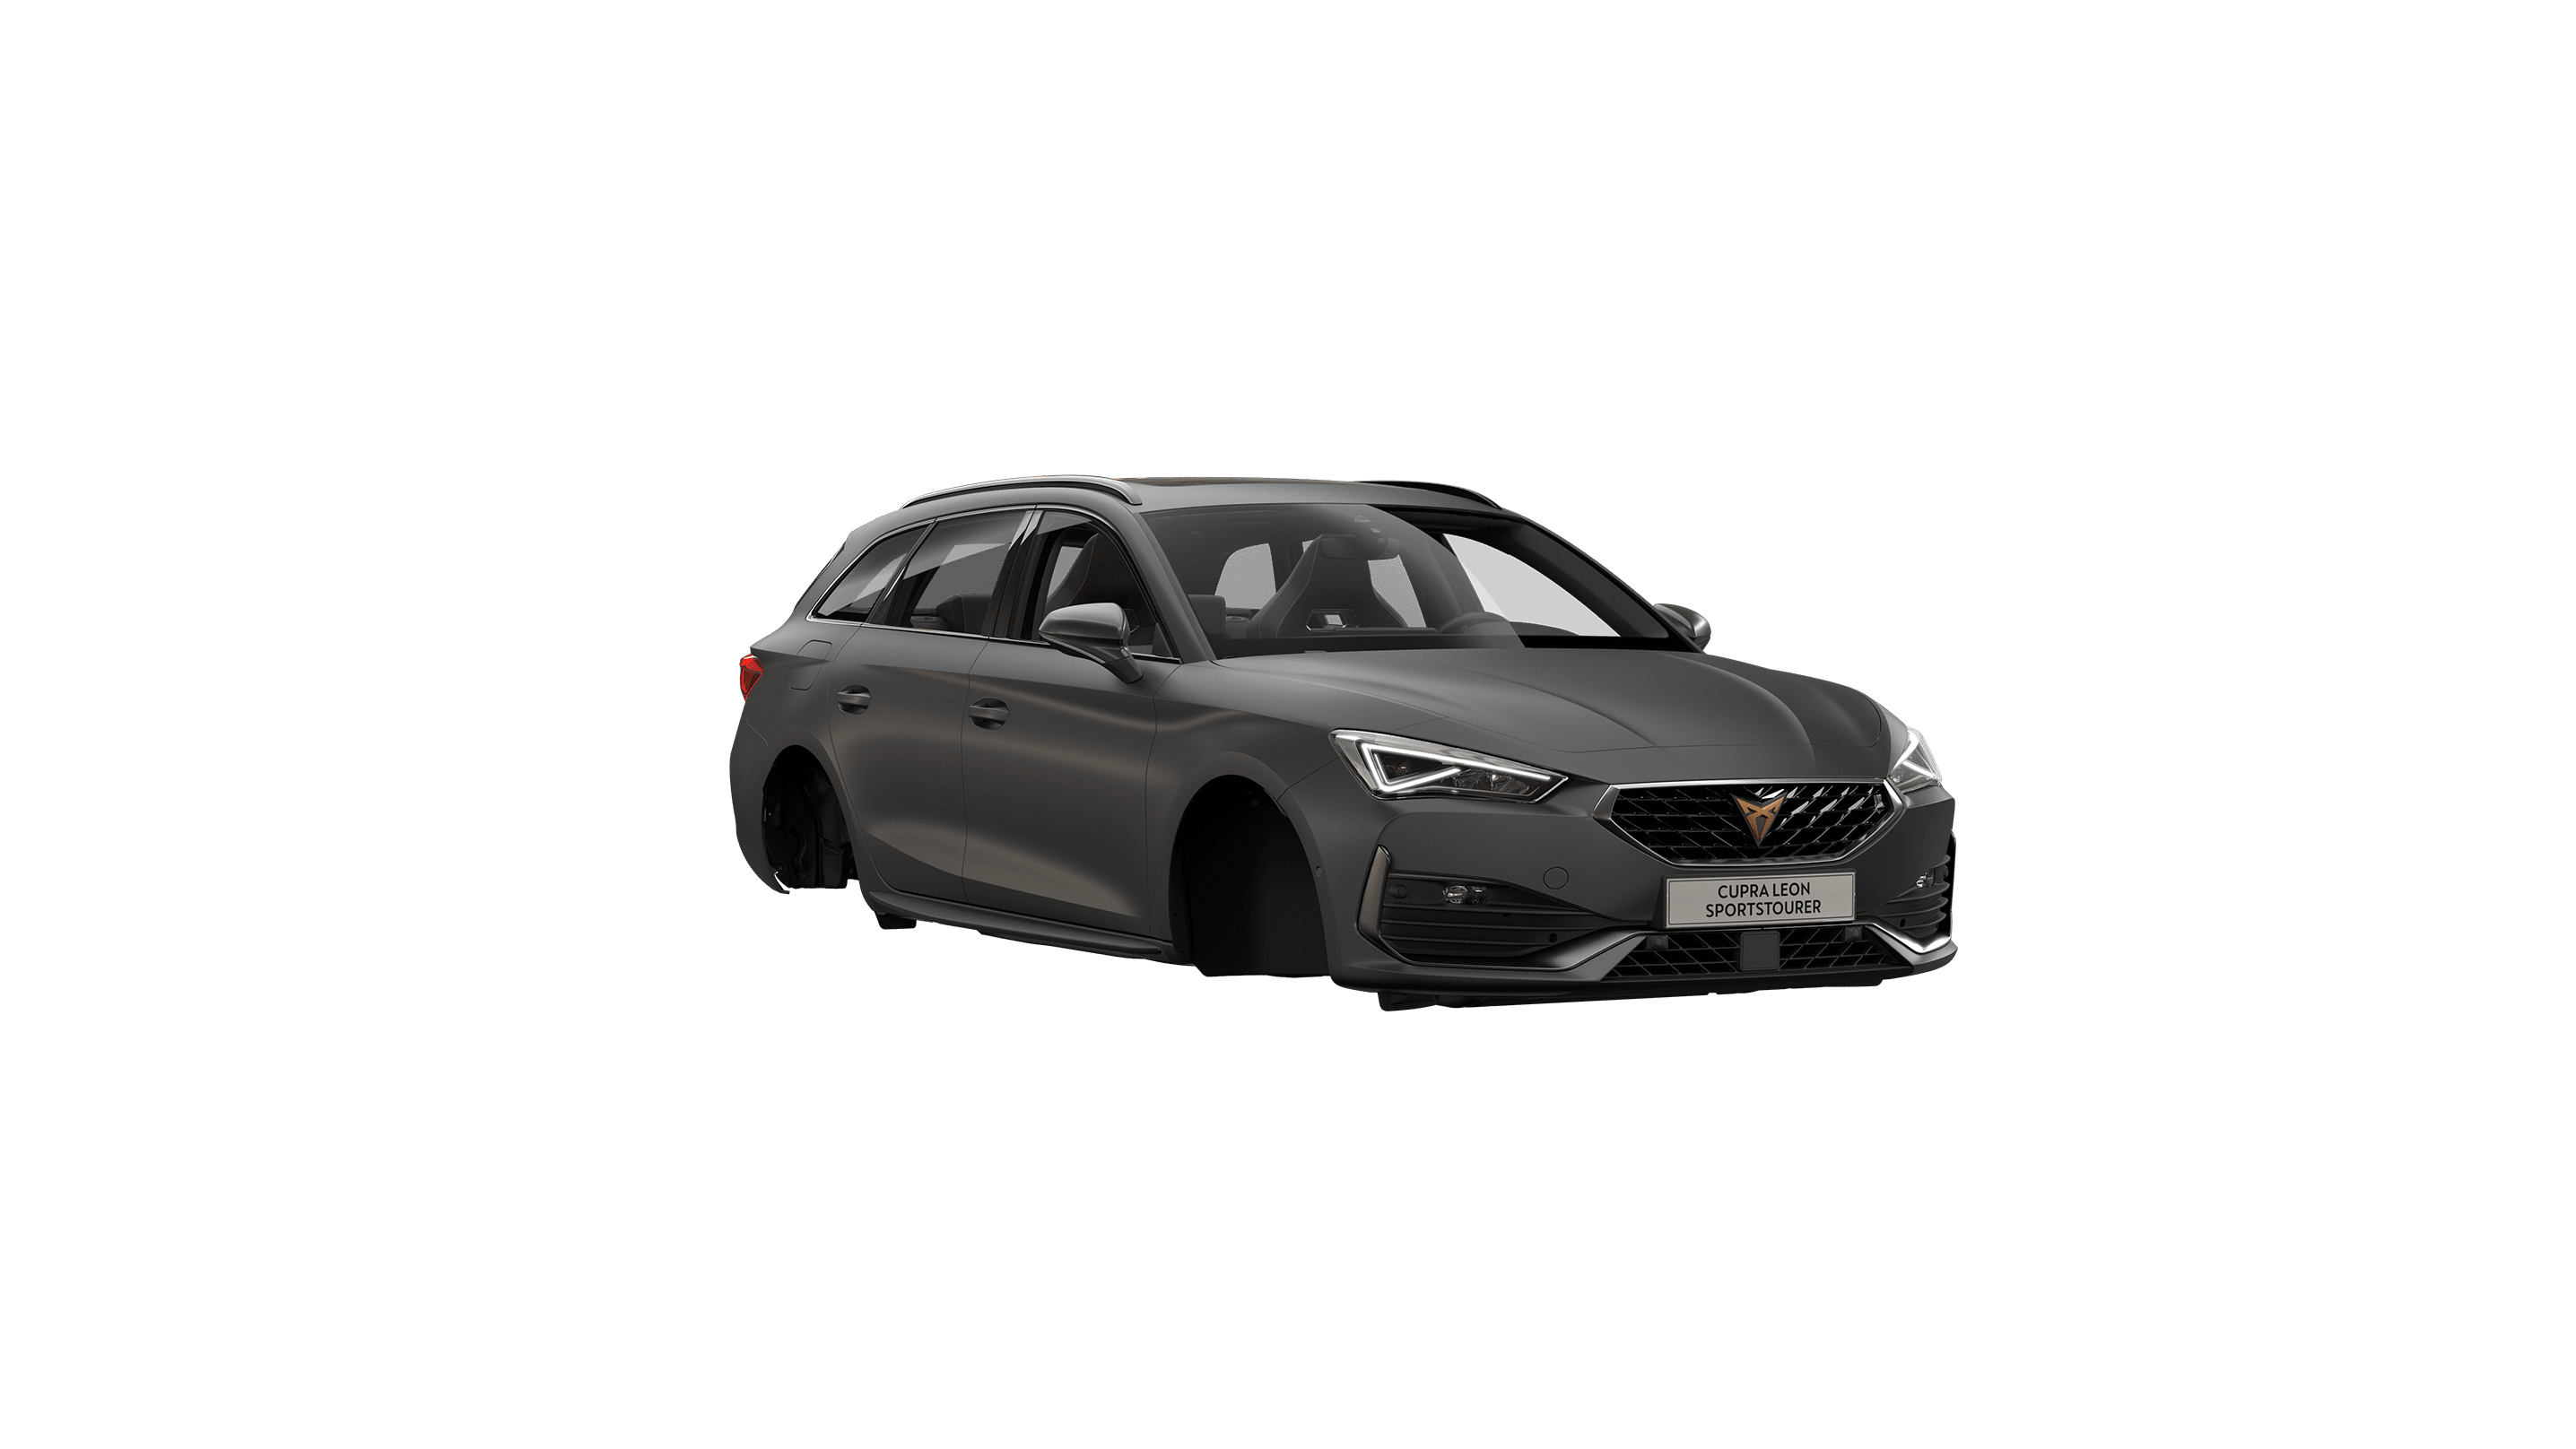 new CUPRA Leon Sportstourer ehybrid Family Sports Car available in magnetic tech matte colour